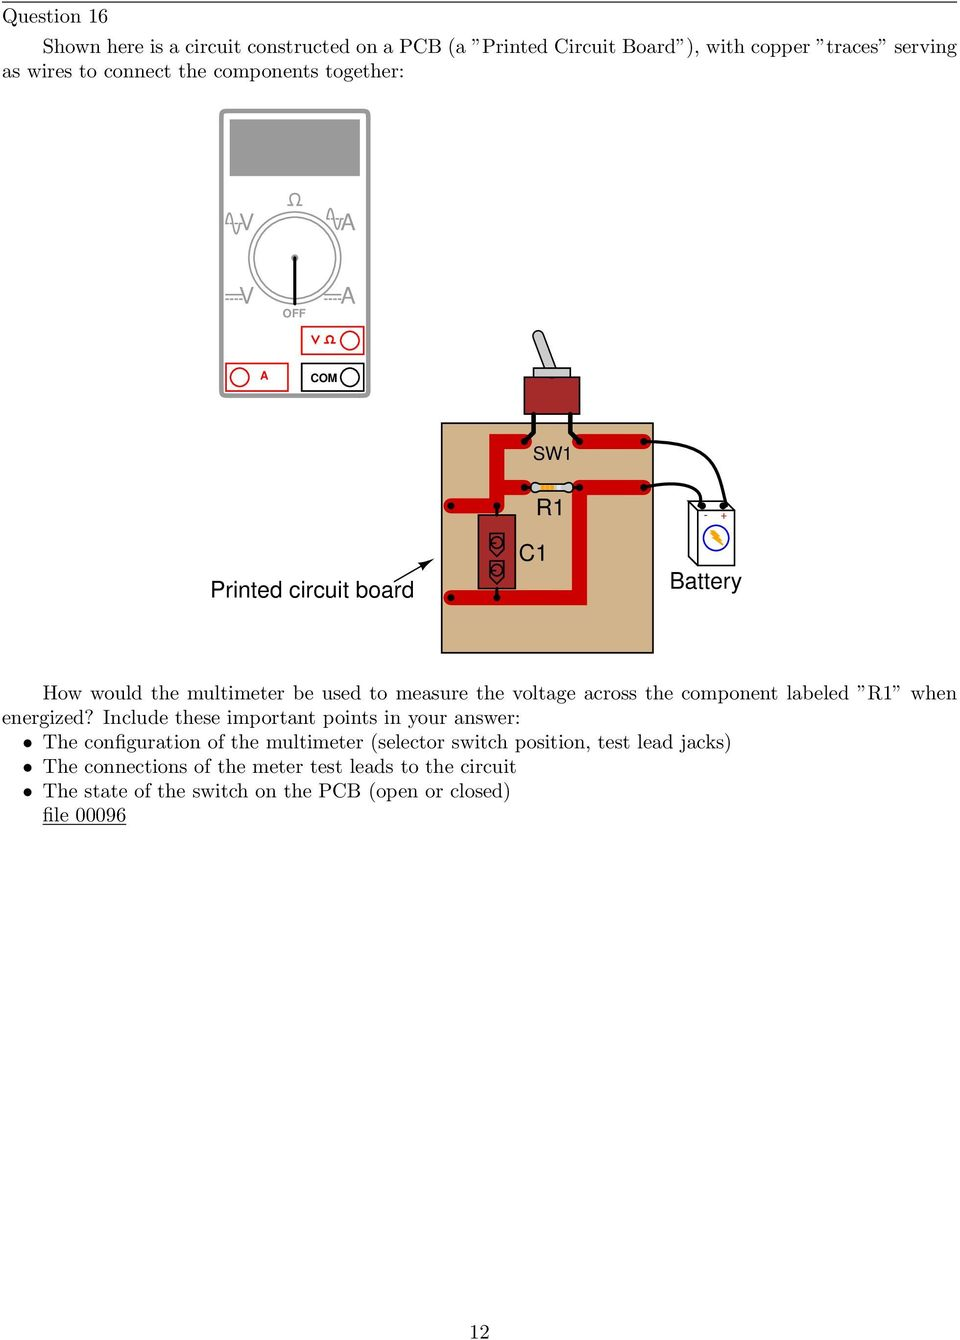 Simple Circuits Worksheet Pdf Spst And Ptm Switch Component Labeled R1 When Energized